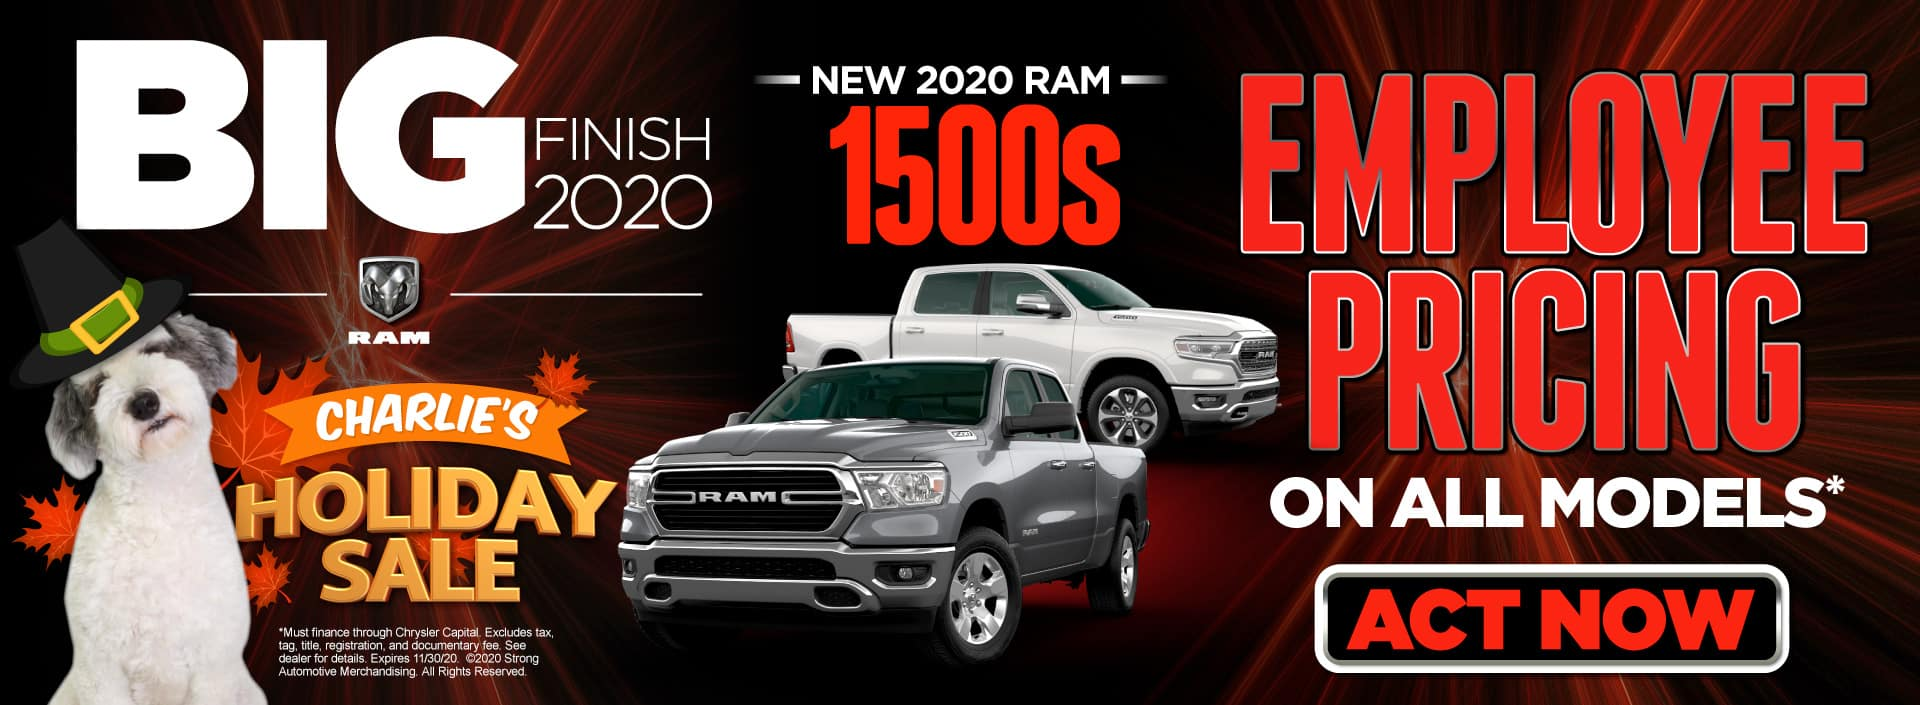 Employee Pricing on New 2020 Ram 1500s | Act now